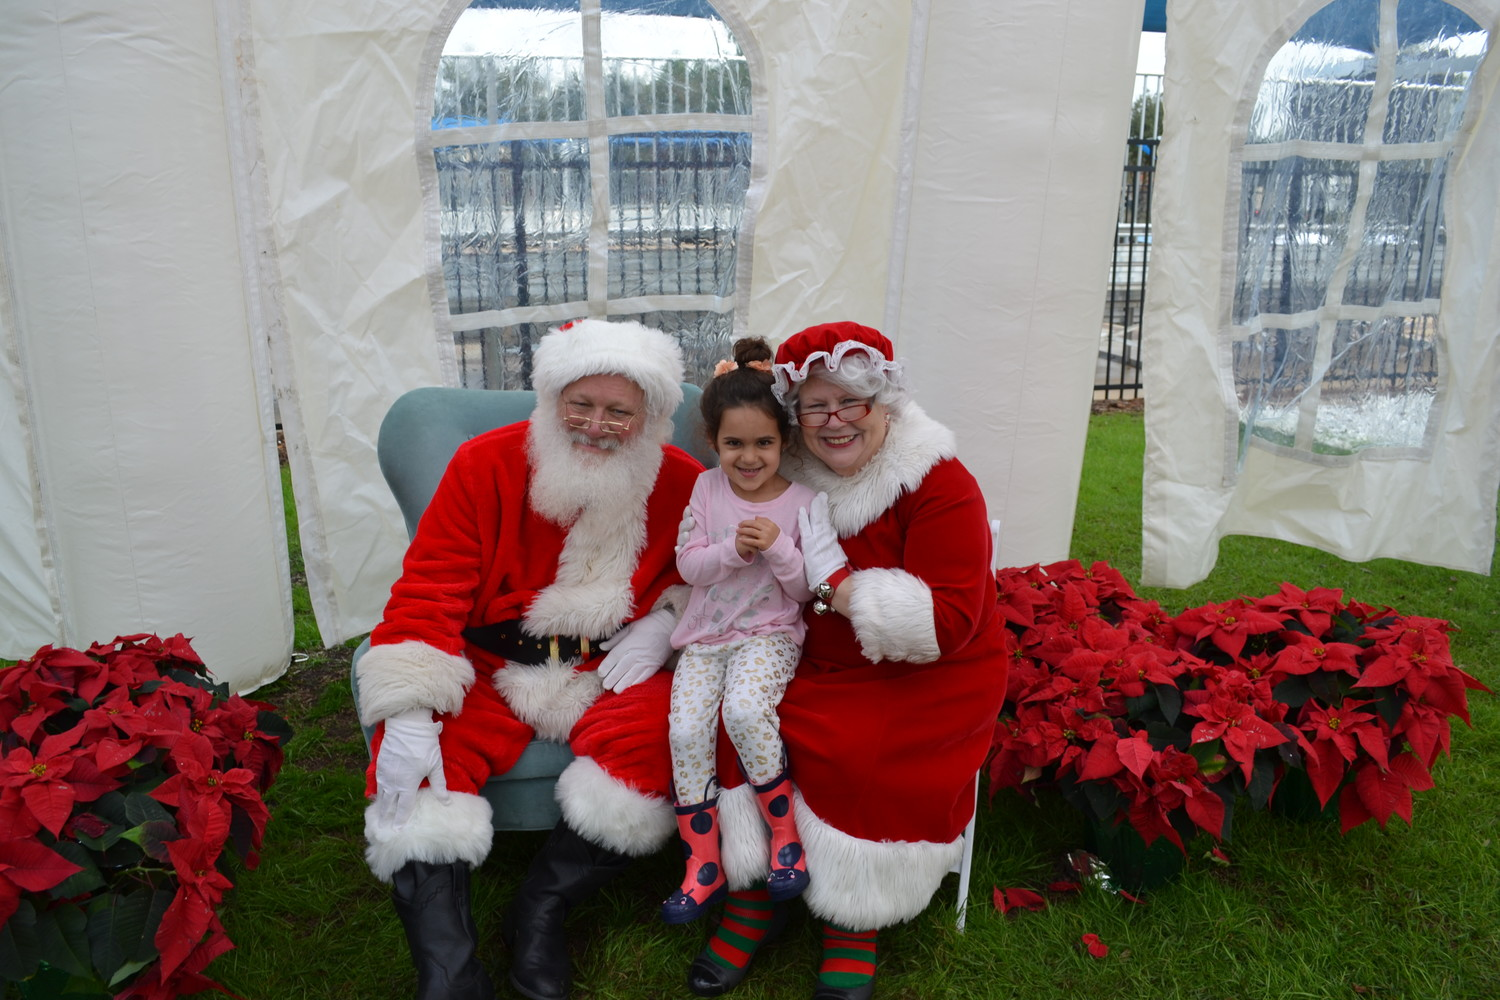 A happy girl enjoys her visit with Santa and Mrs. Claus at the Nocatee Farmers Market on Dec. 15.